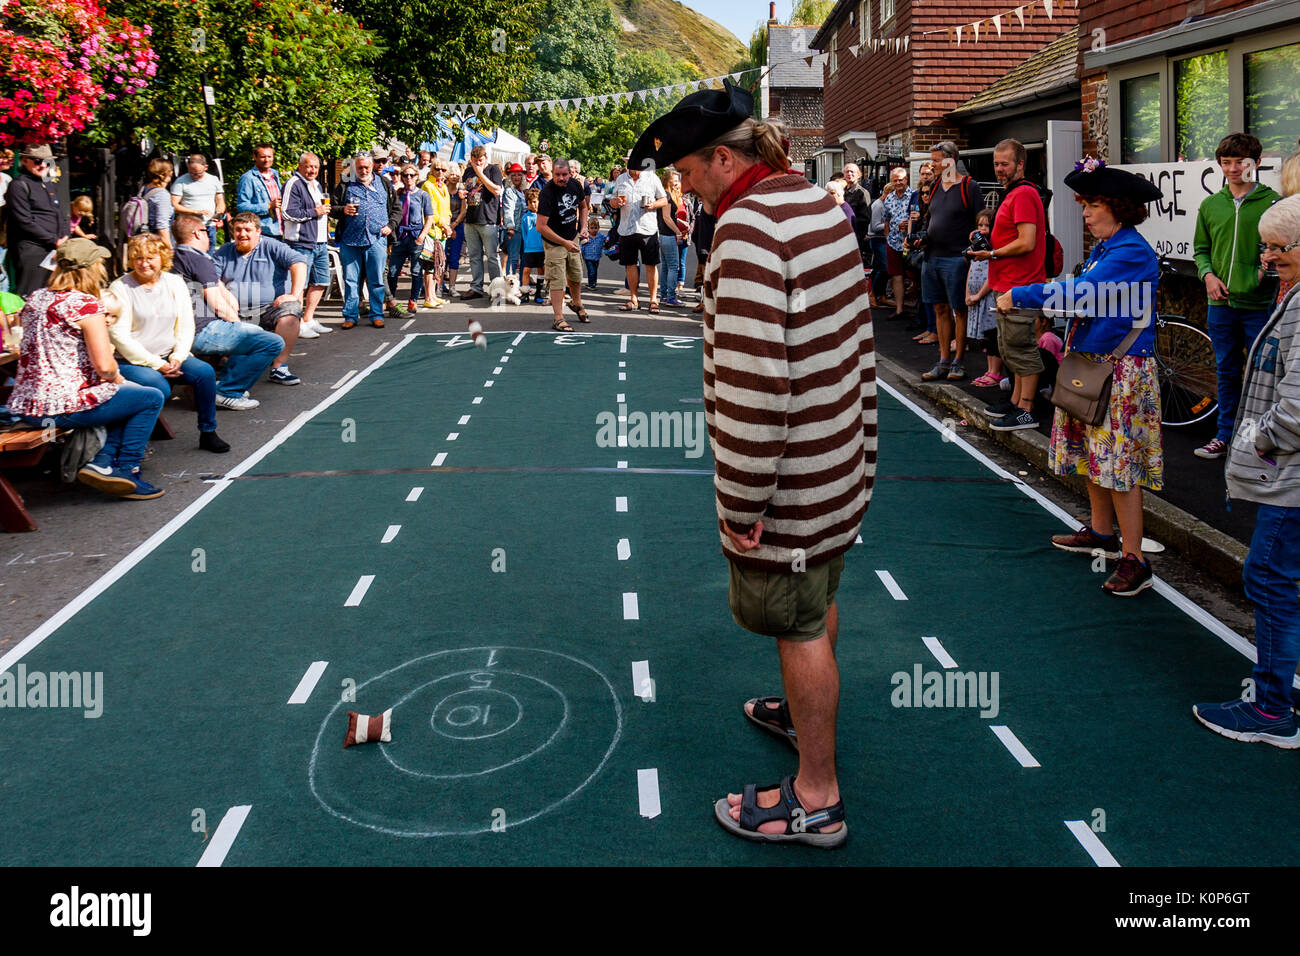 Local People Take Part In A 'Throwing The Bean Bag' Competition At The Annual South Street Sports Day and Dog Show, Lewes, East Sussex, UK - Stock Image